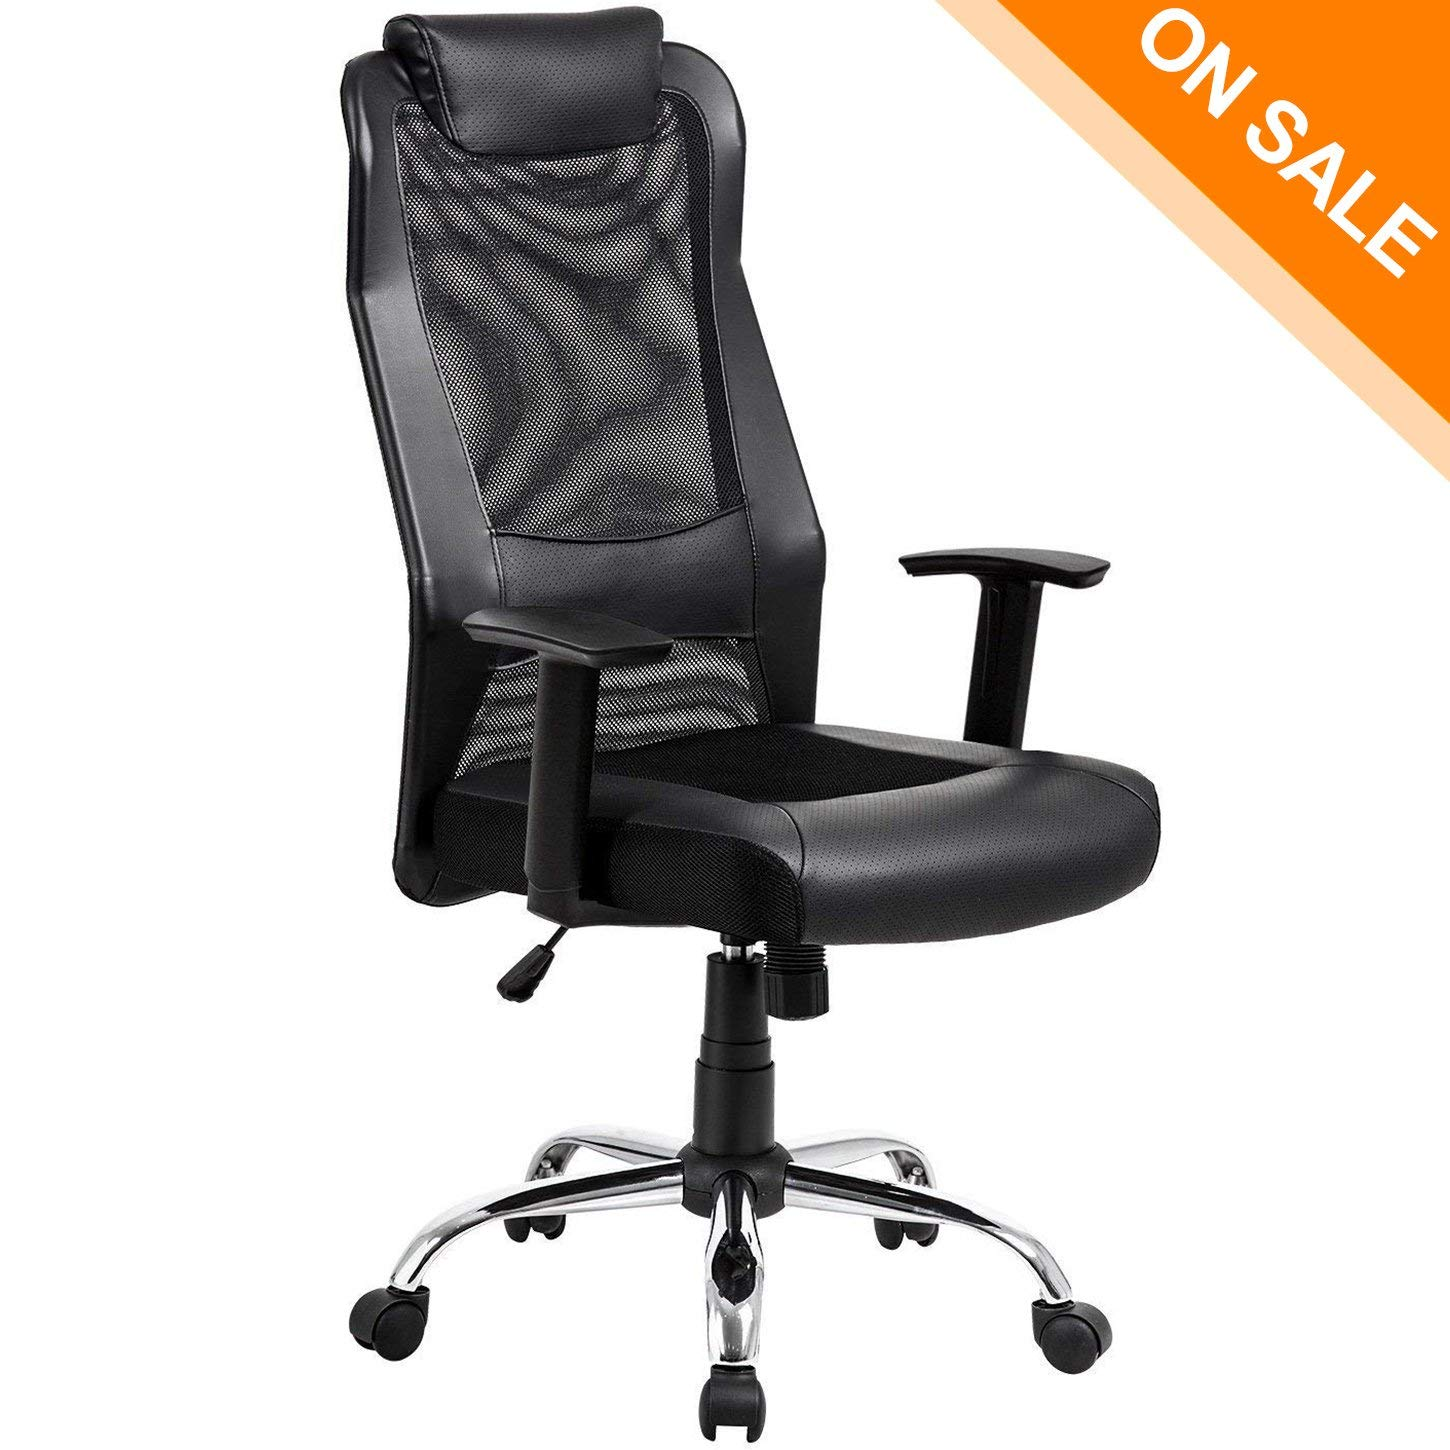 KADIRYA High Back Mesh Office and Computer Desk Chair